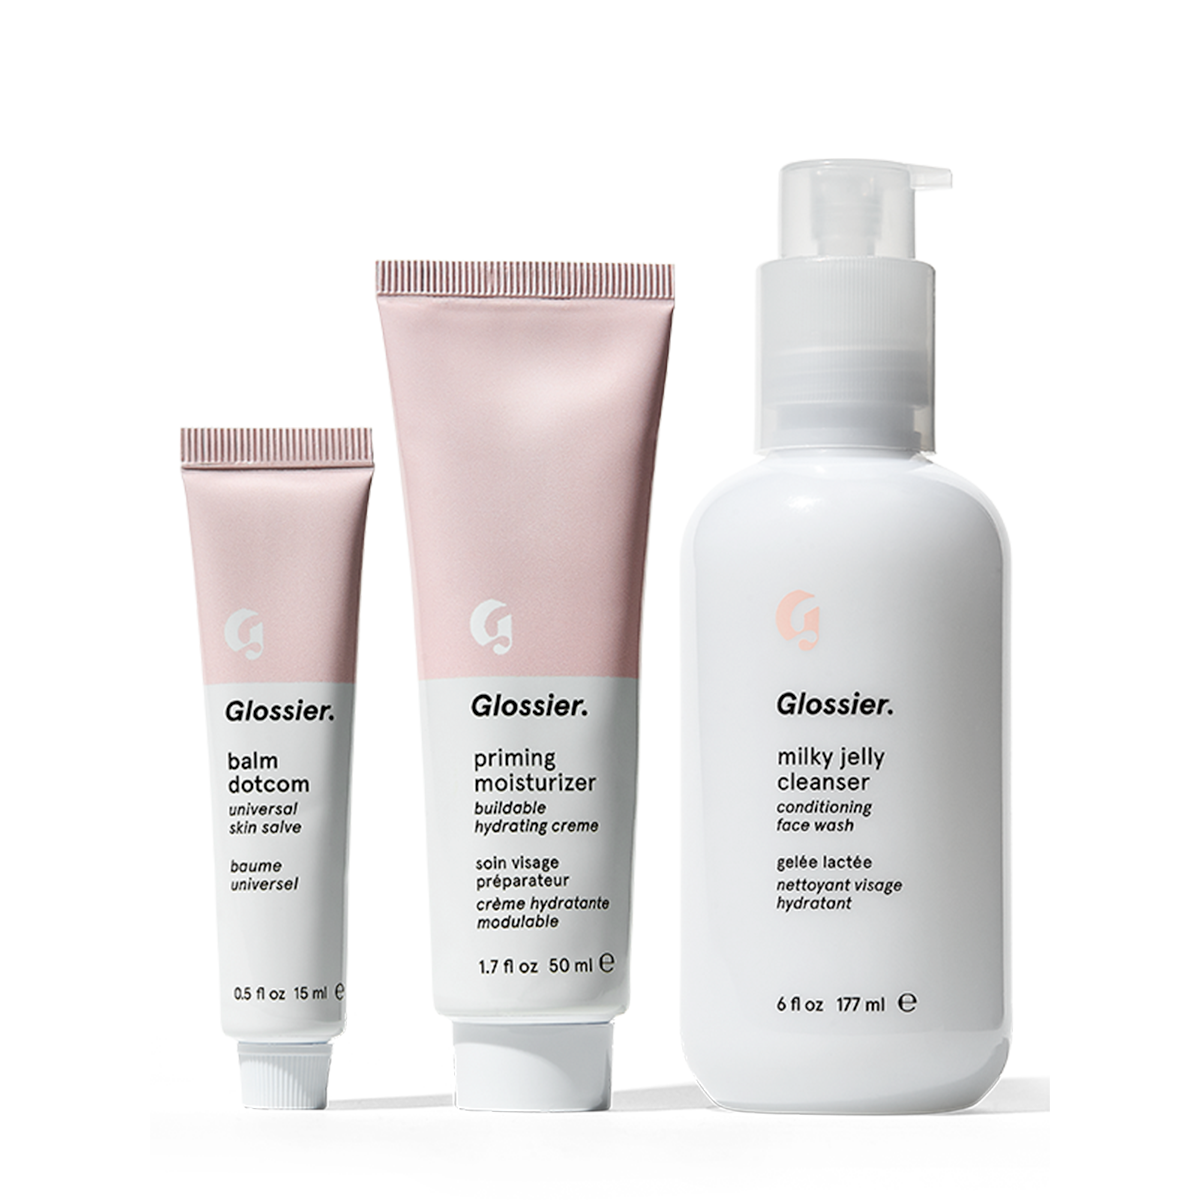 Glossier Phase 1 Set, Three everyday products that form the backbone of your skincare routine: cleanser, moisturizer and balm, for all skin types